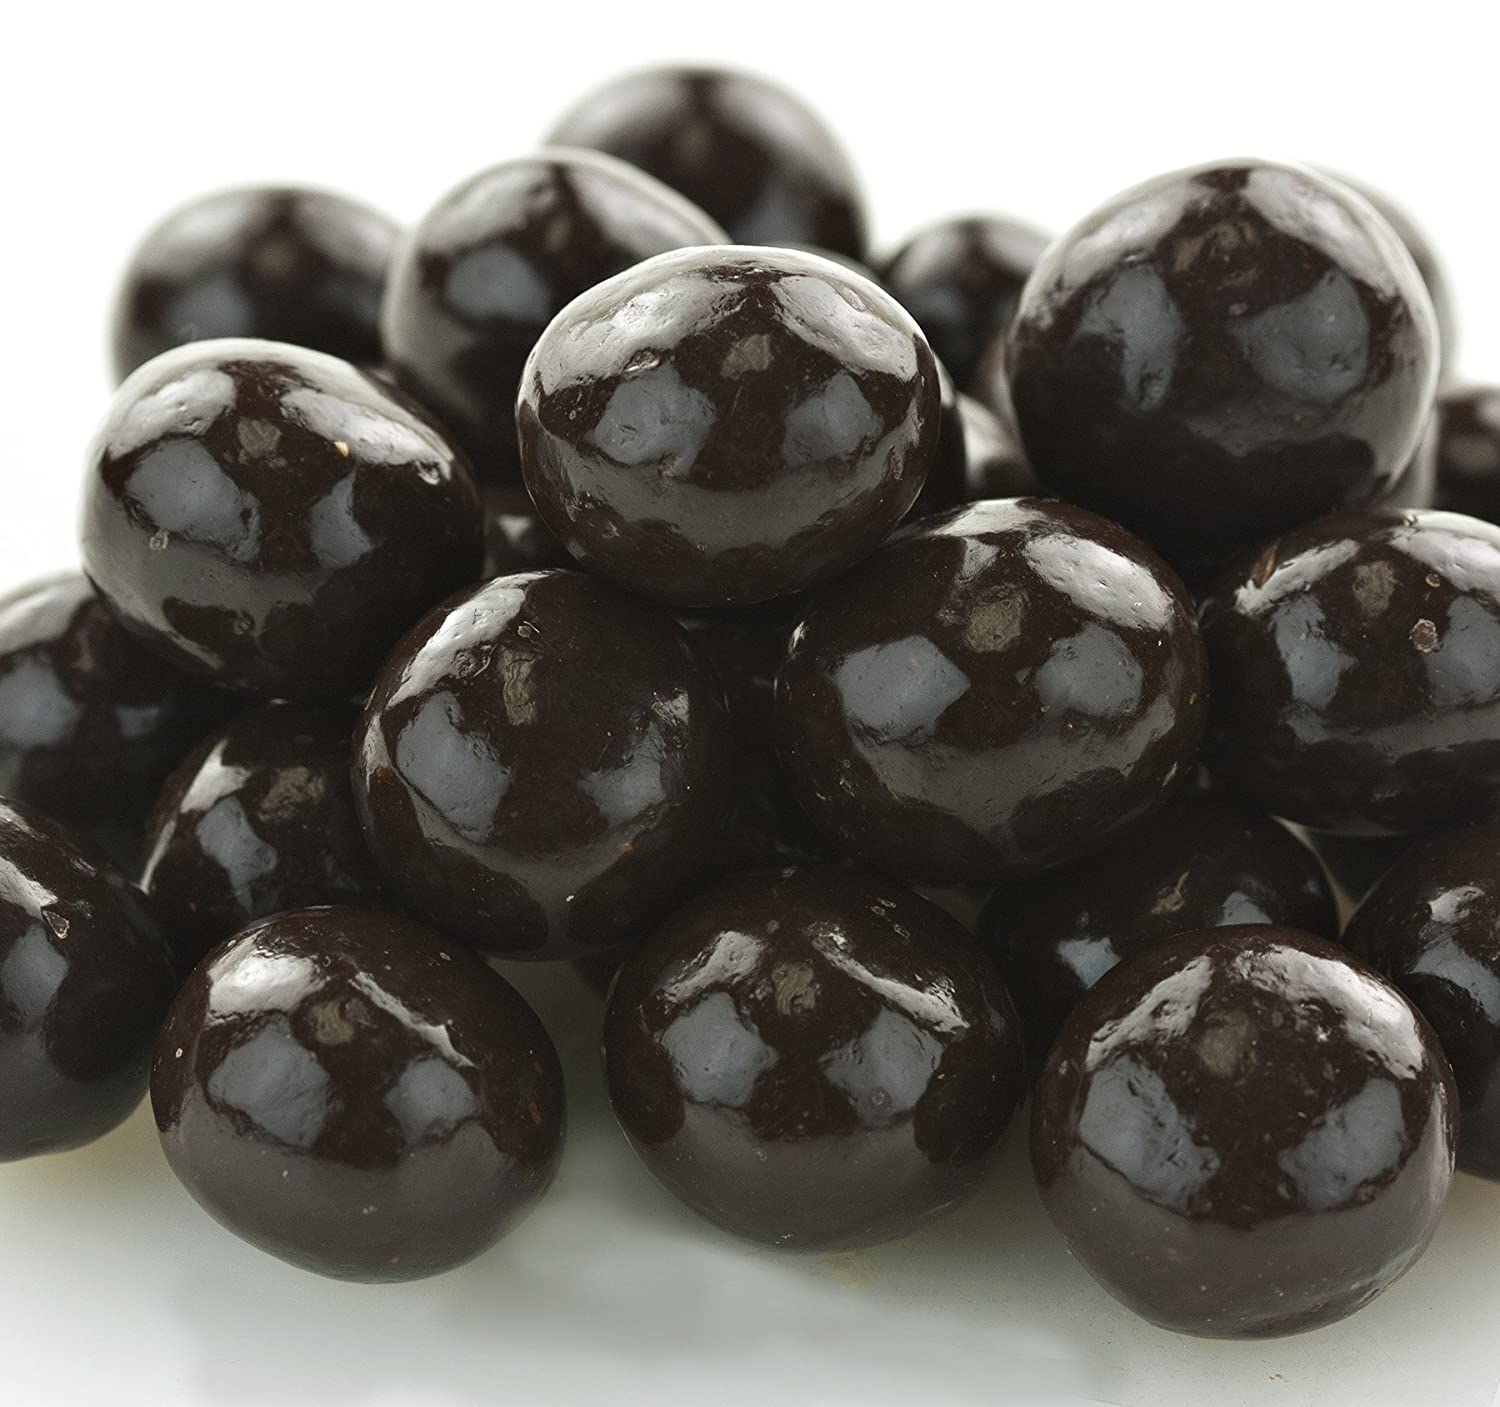 Amazon.com : Bulk Dark Chocolate-Covered Malt Balls, 1.5 Lb. Bag ...